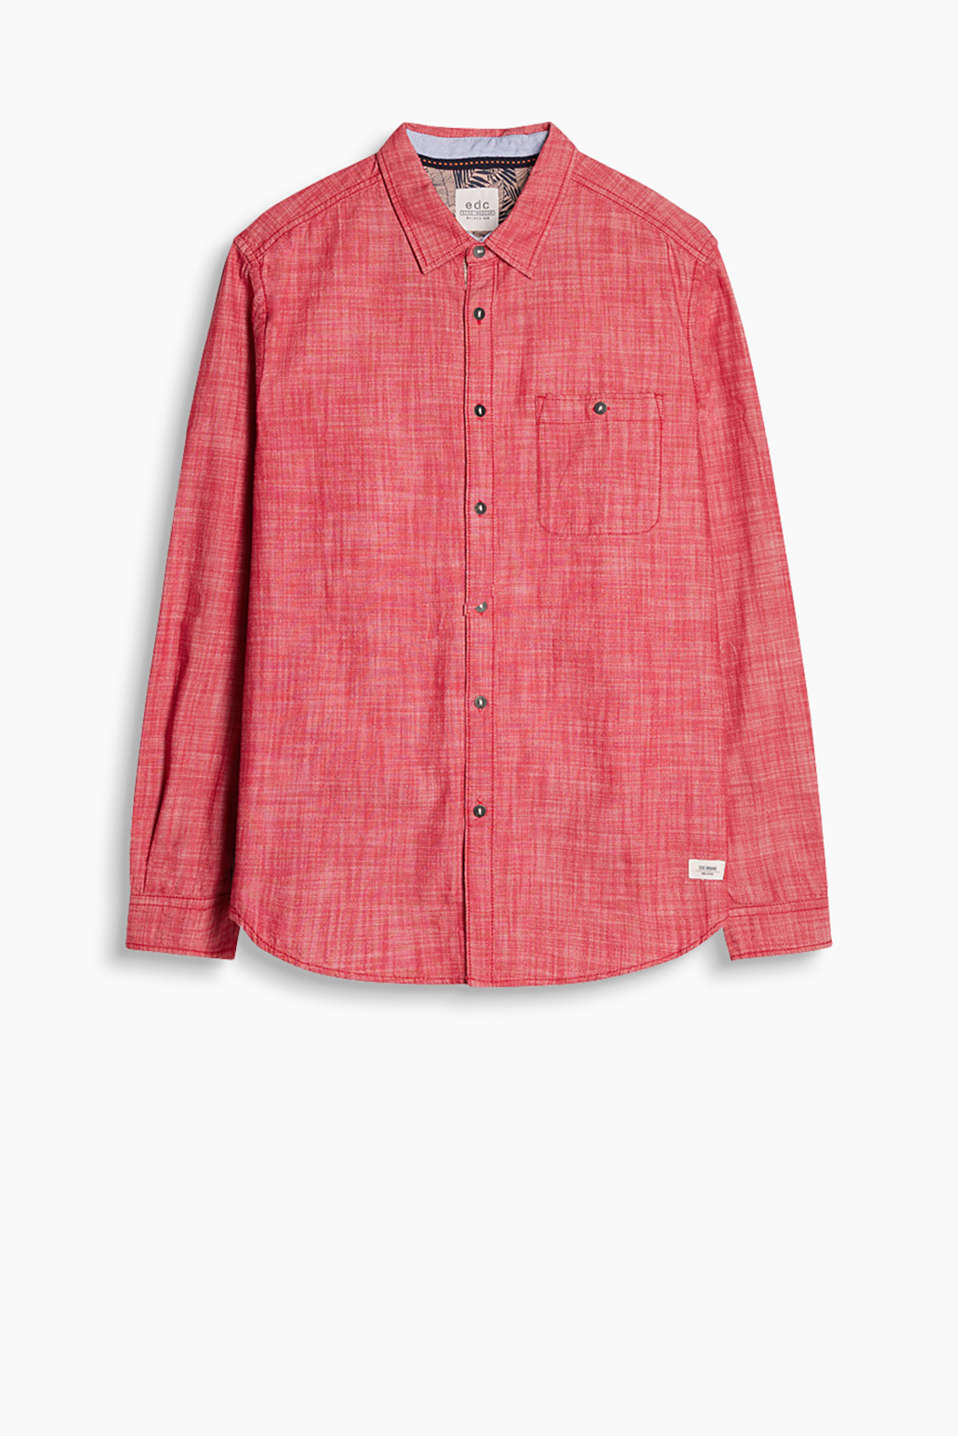 Shirt in firm cotton chambray with a button-down breast pocket